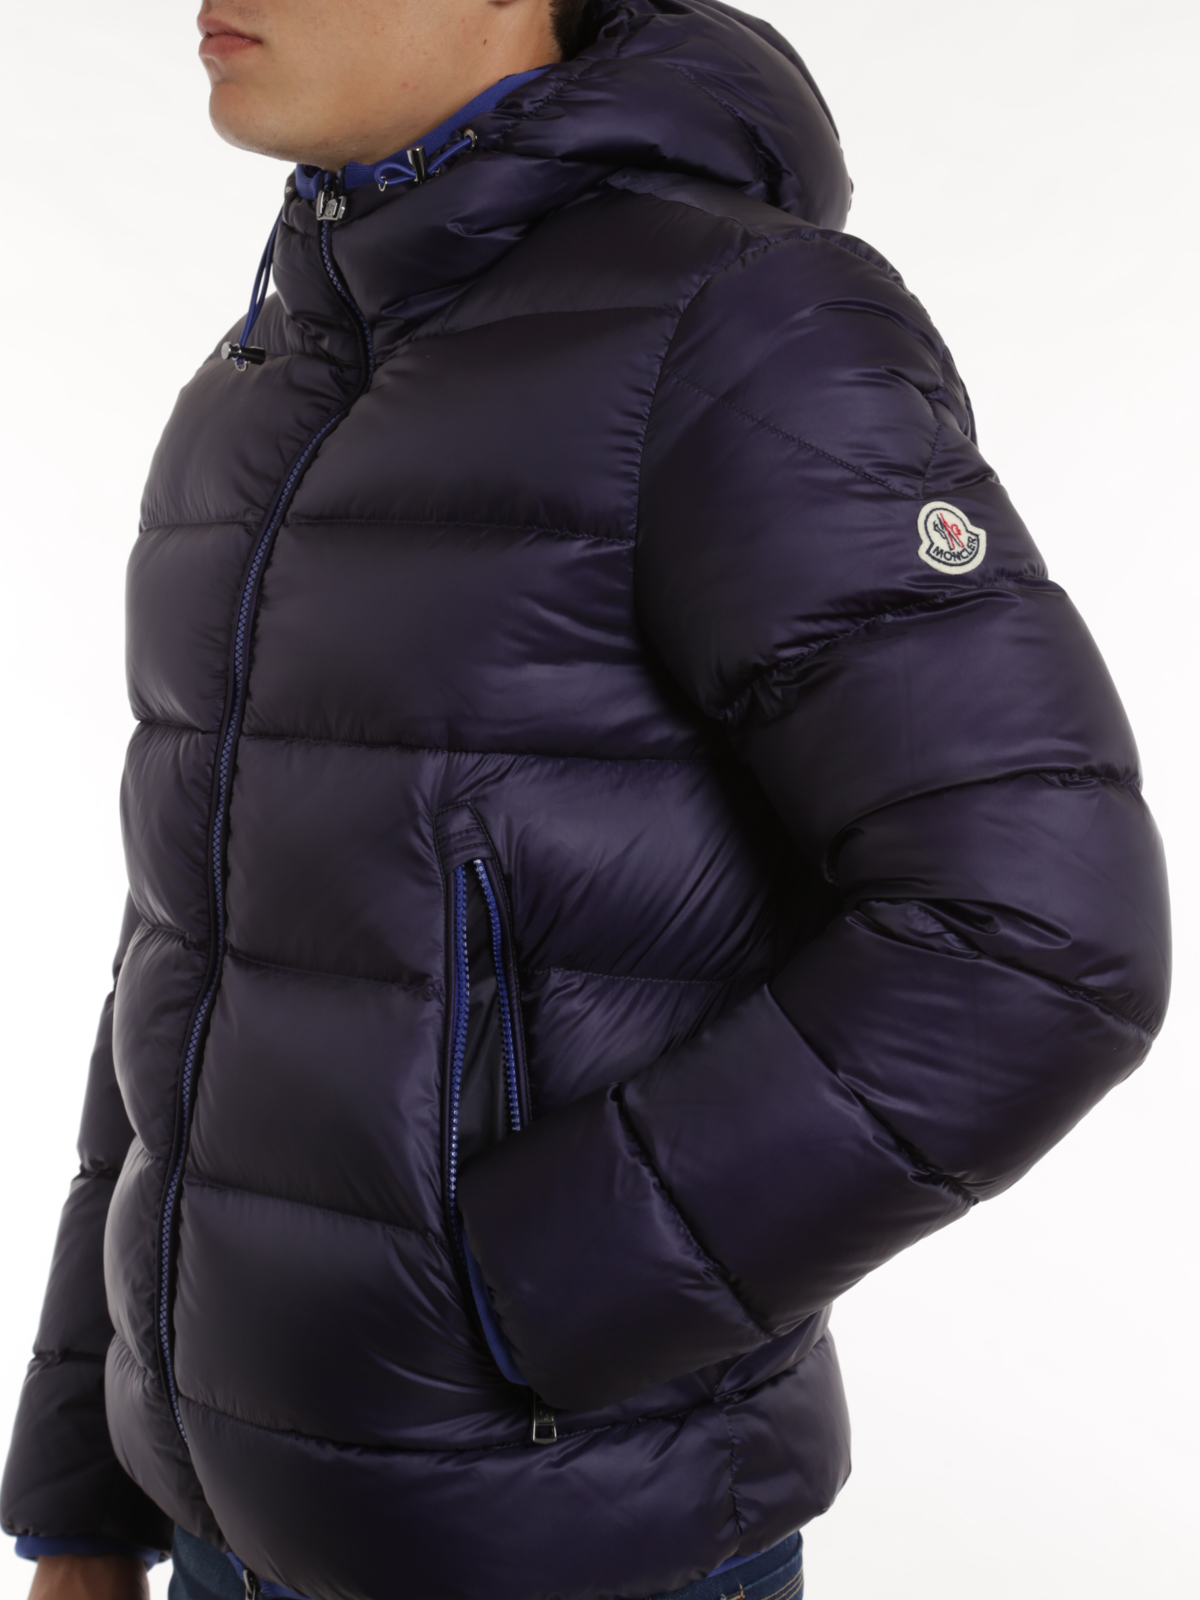 99bb2747f Moncler - Chauvon down jacket - padded jackets - A2 091 4139305 ...